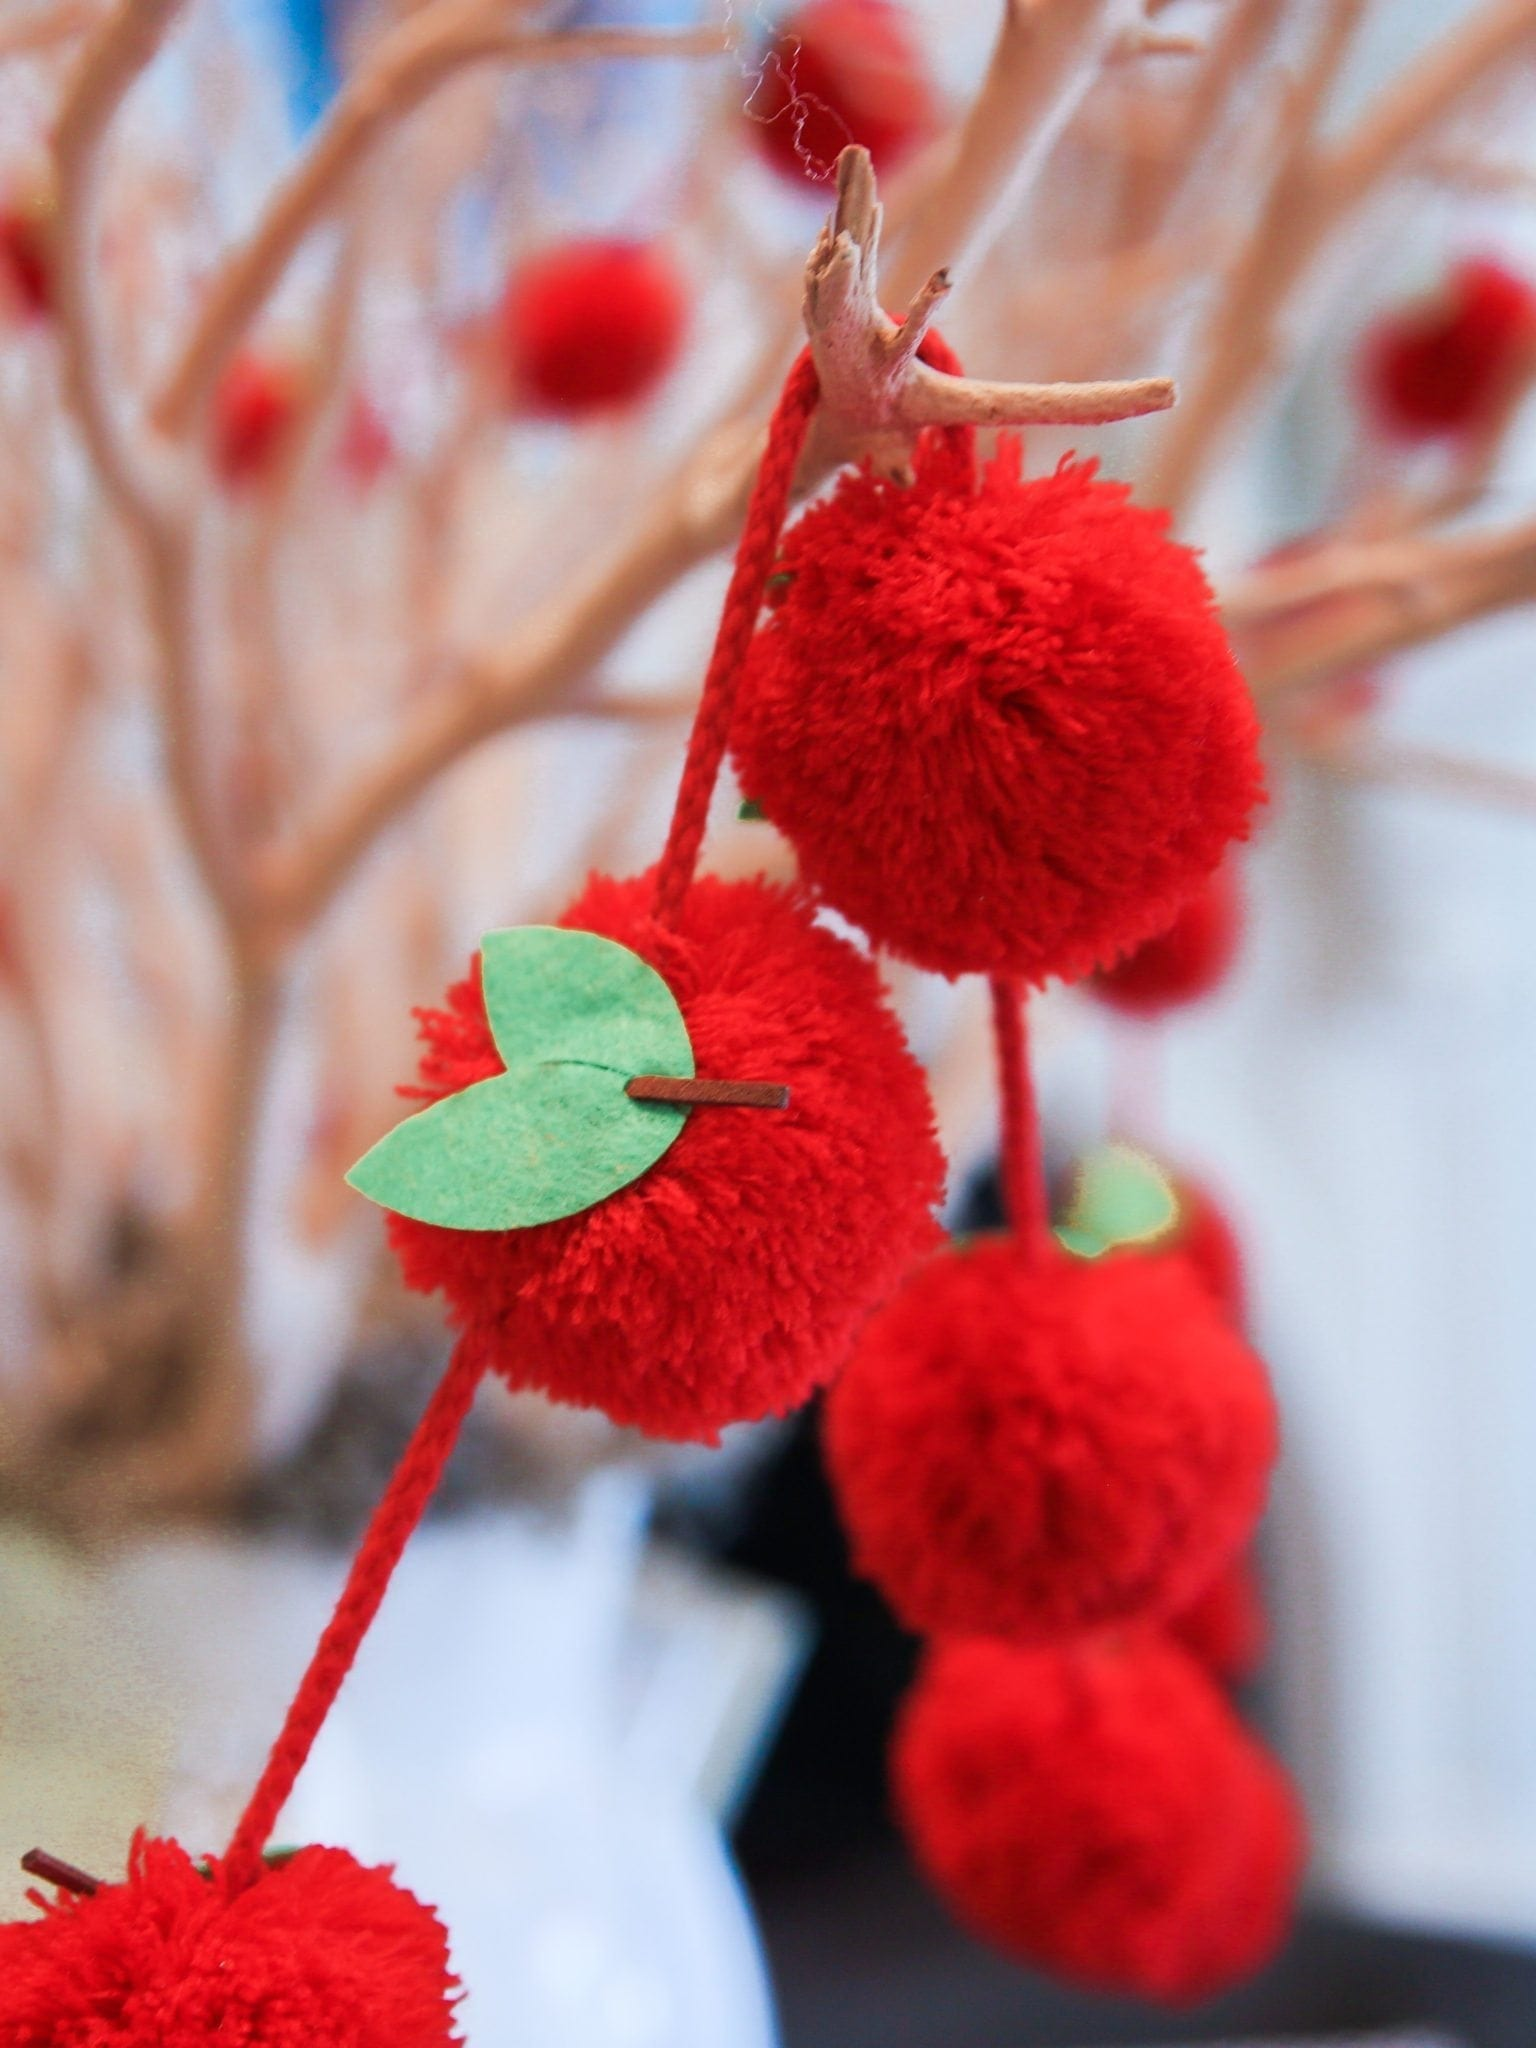 Red apple garland with apple pom poms